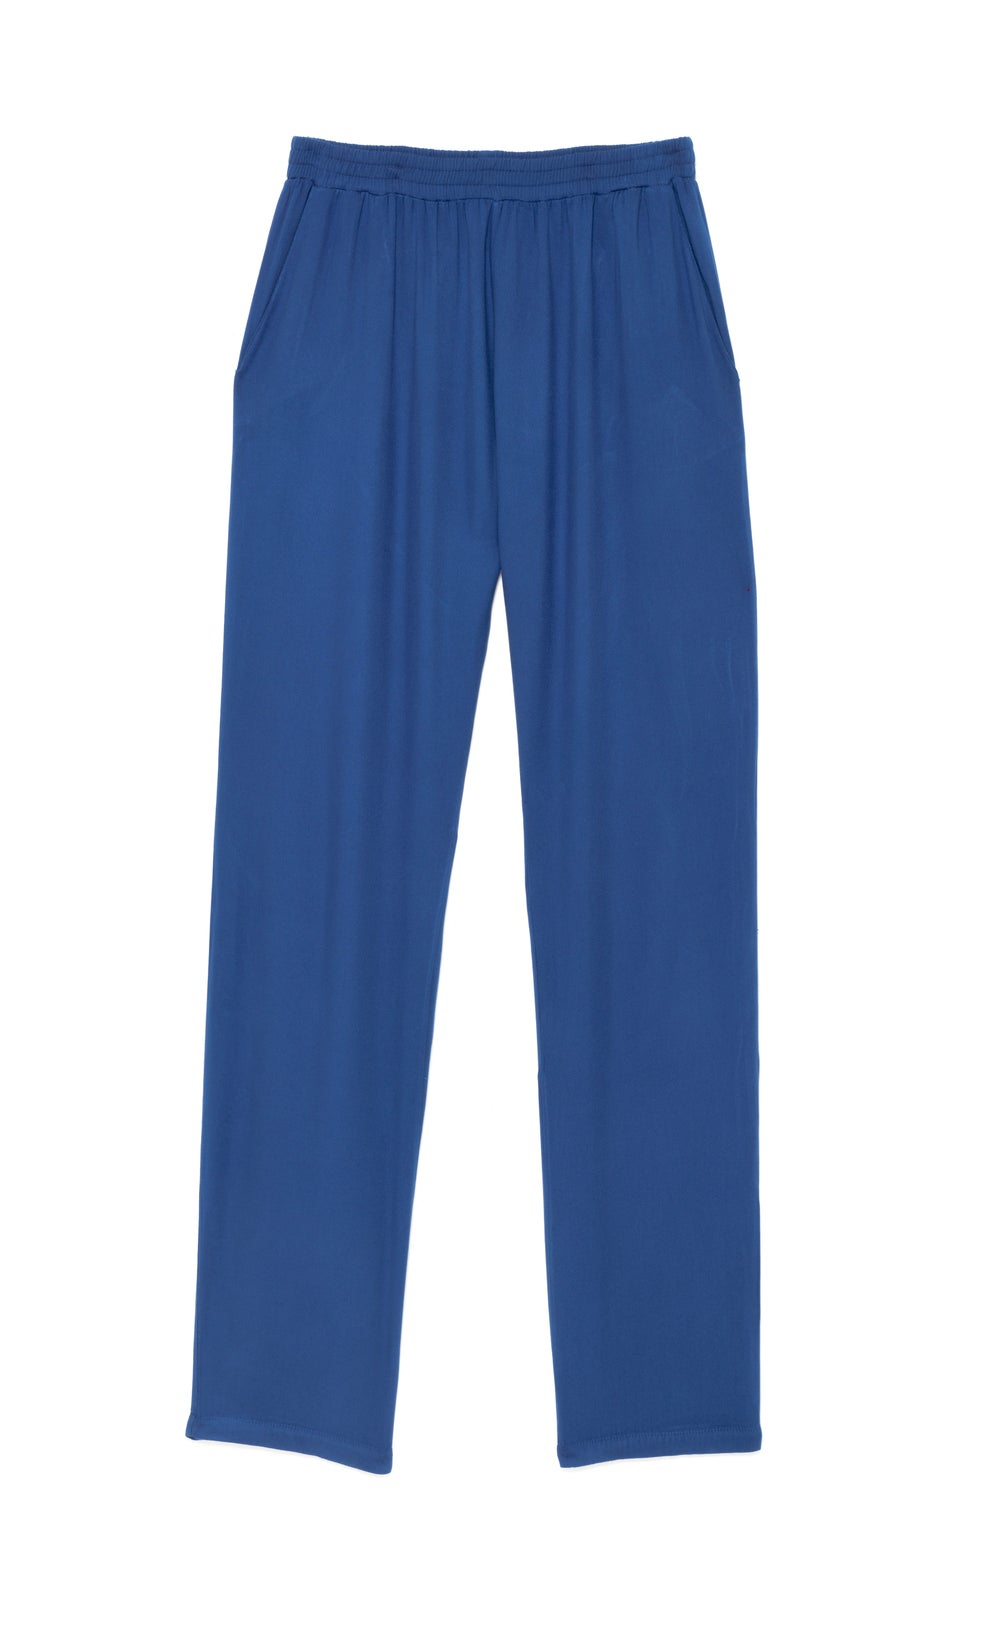 Image of Pantalon twill viscose PENELOPE coloris primaires 99€ -50%